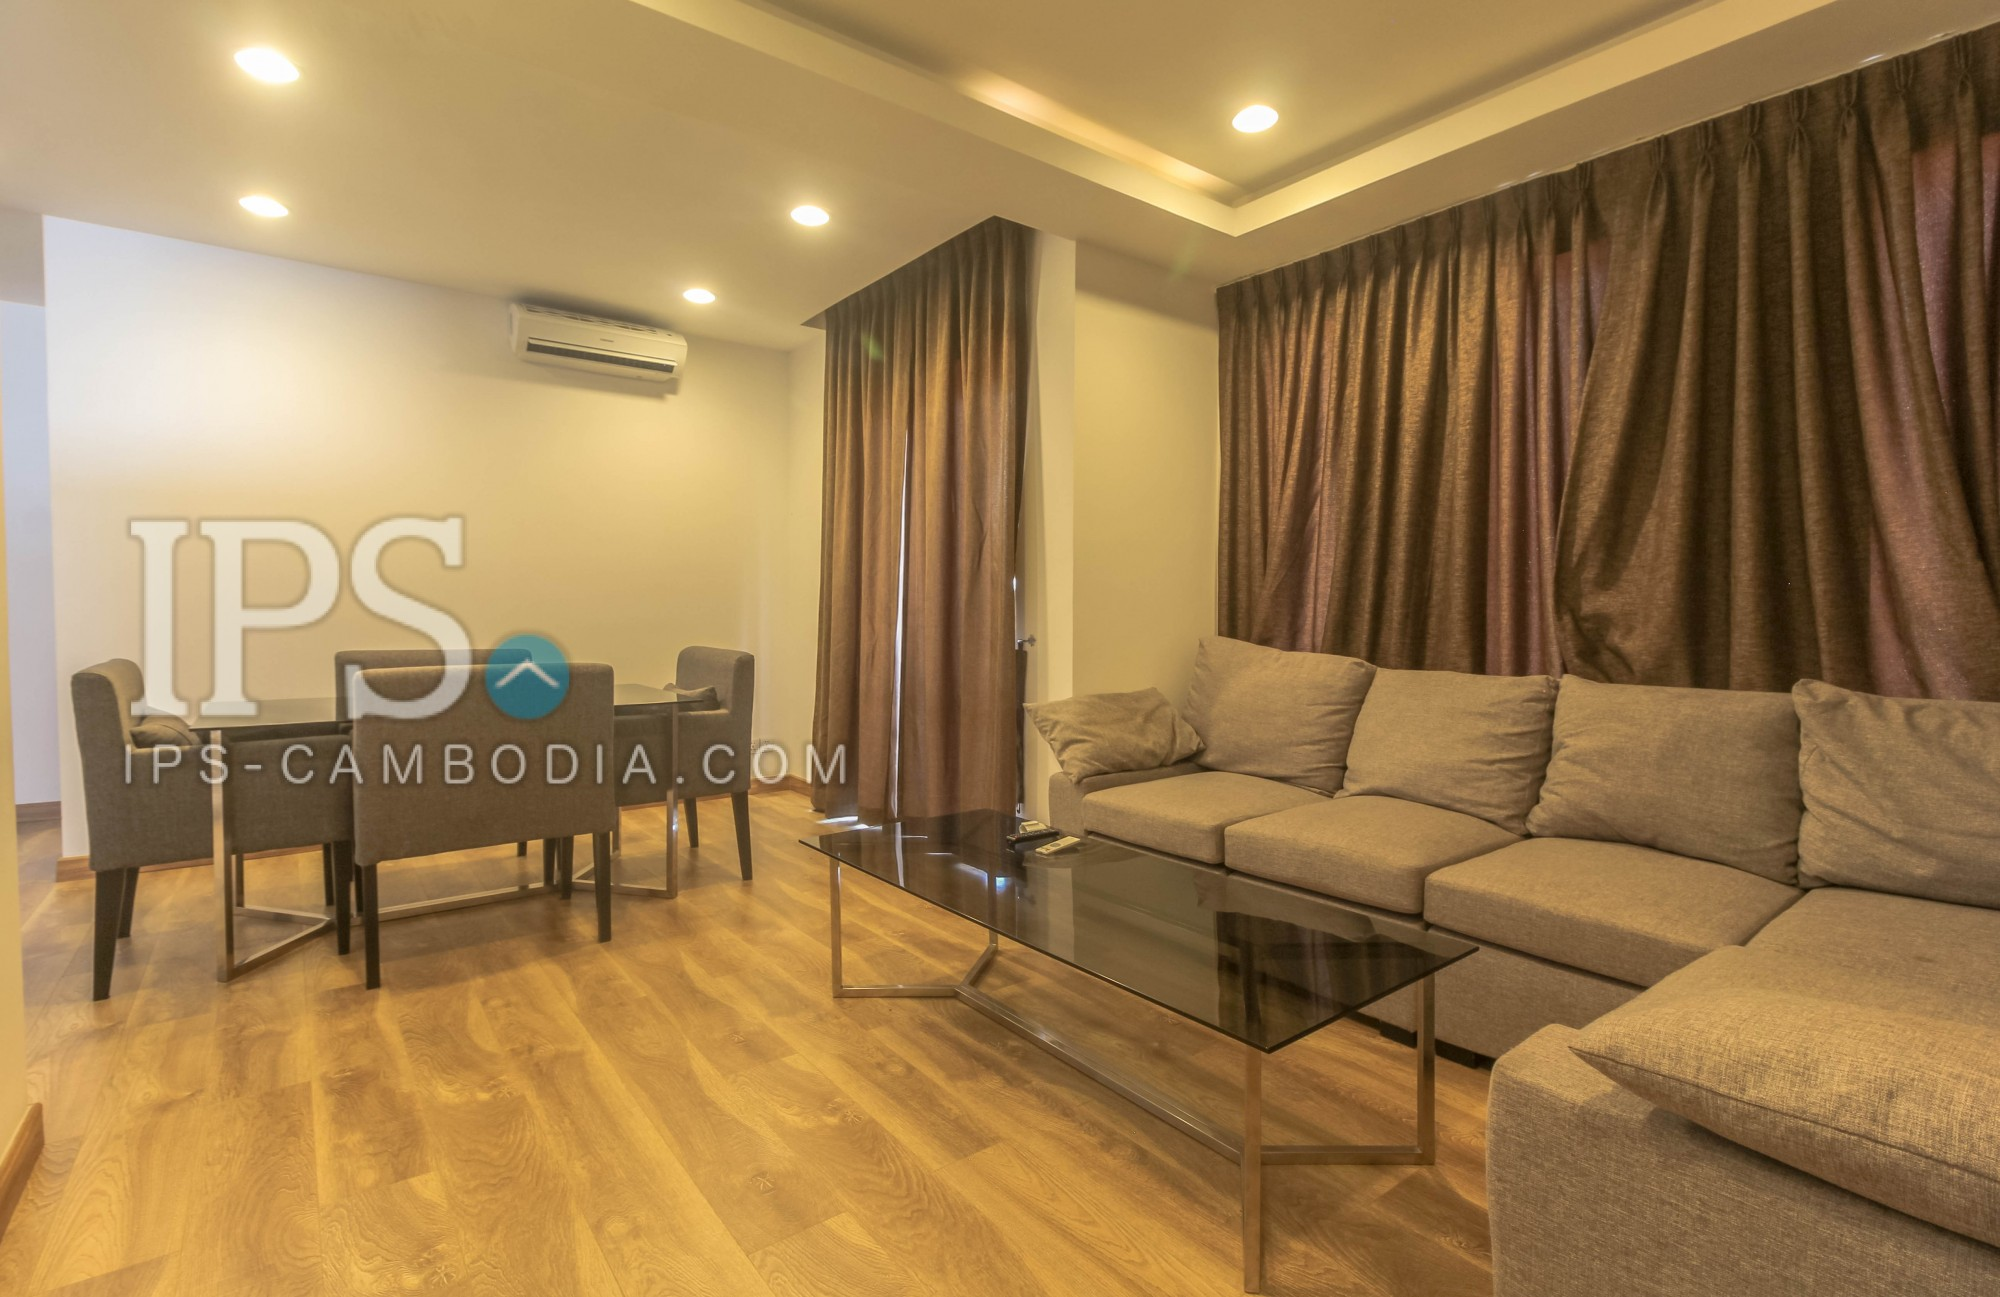 Western Style 2 Bedroom Apartment For Rent - Night Market Area